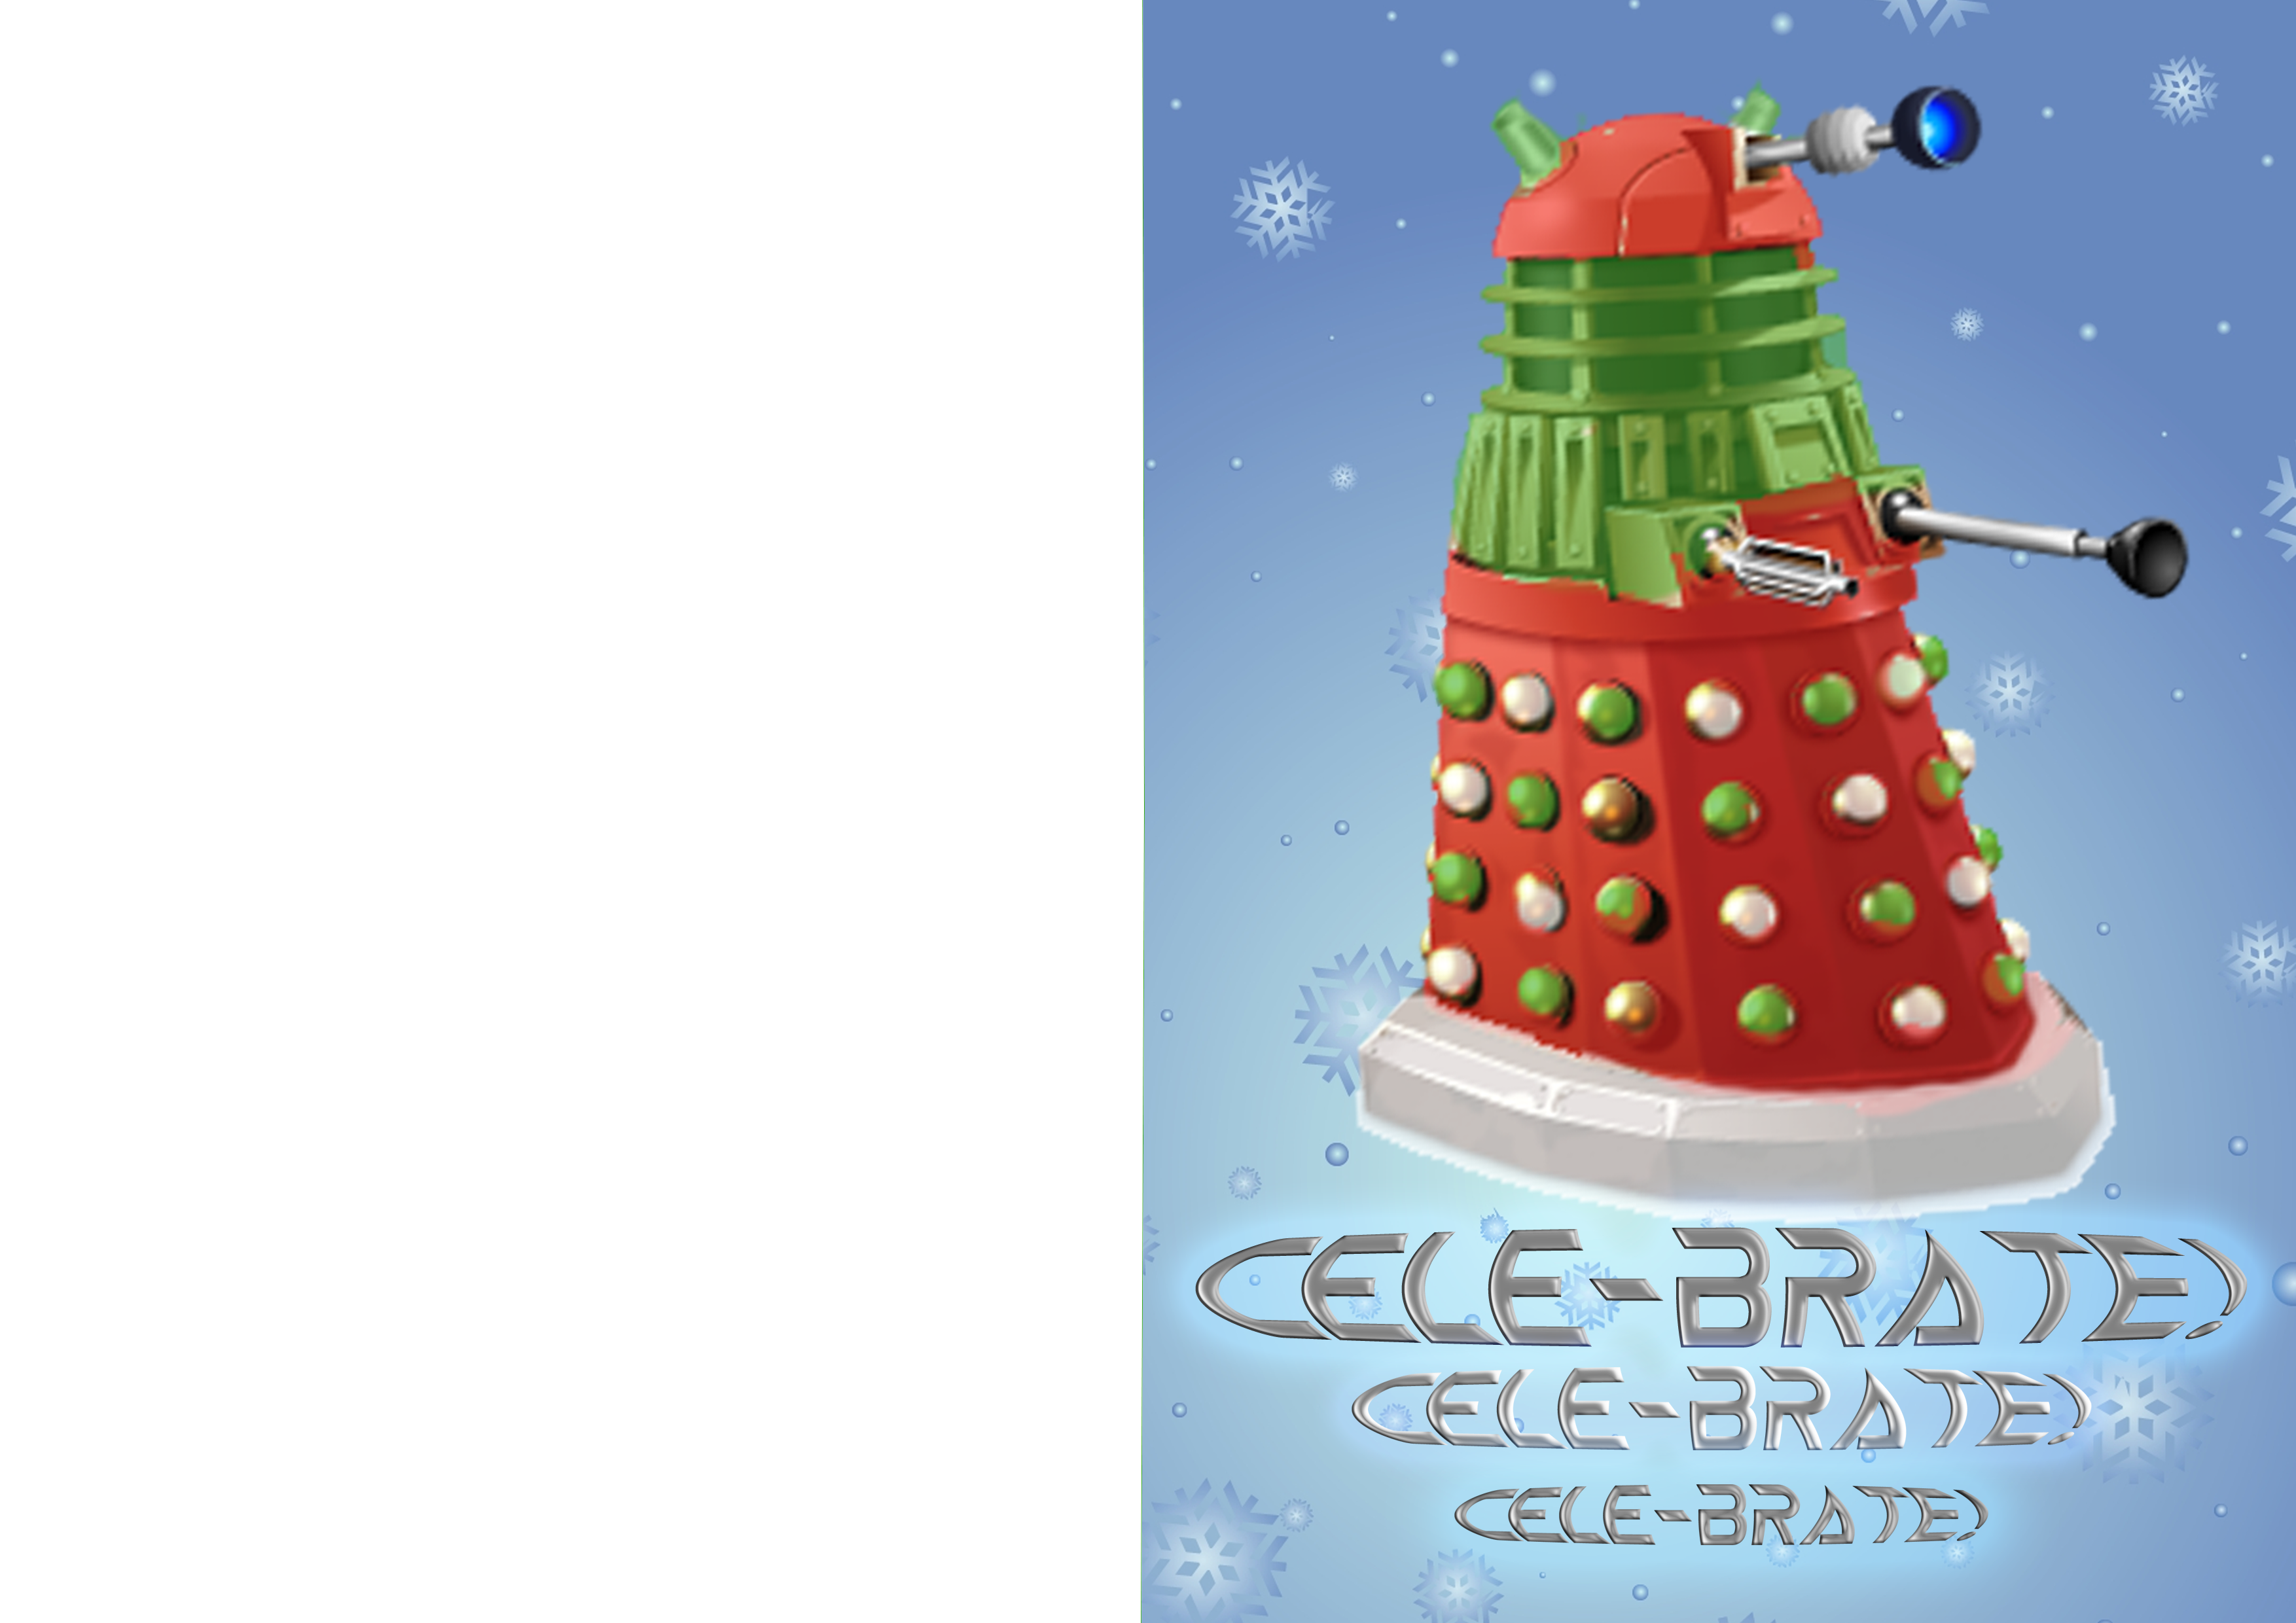 Doctor Who Christmas Cards.Doctor Who Cele Brate Christmas Card By Kestrelphantomwitch On